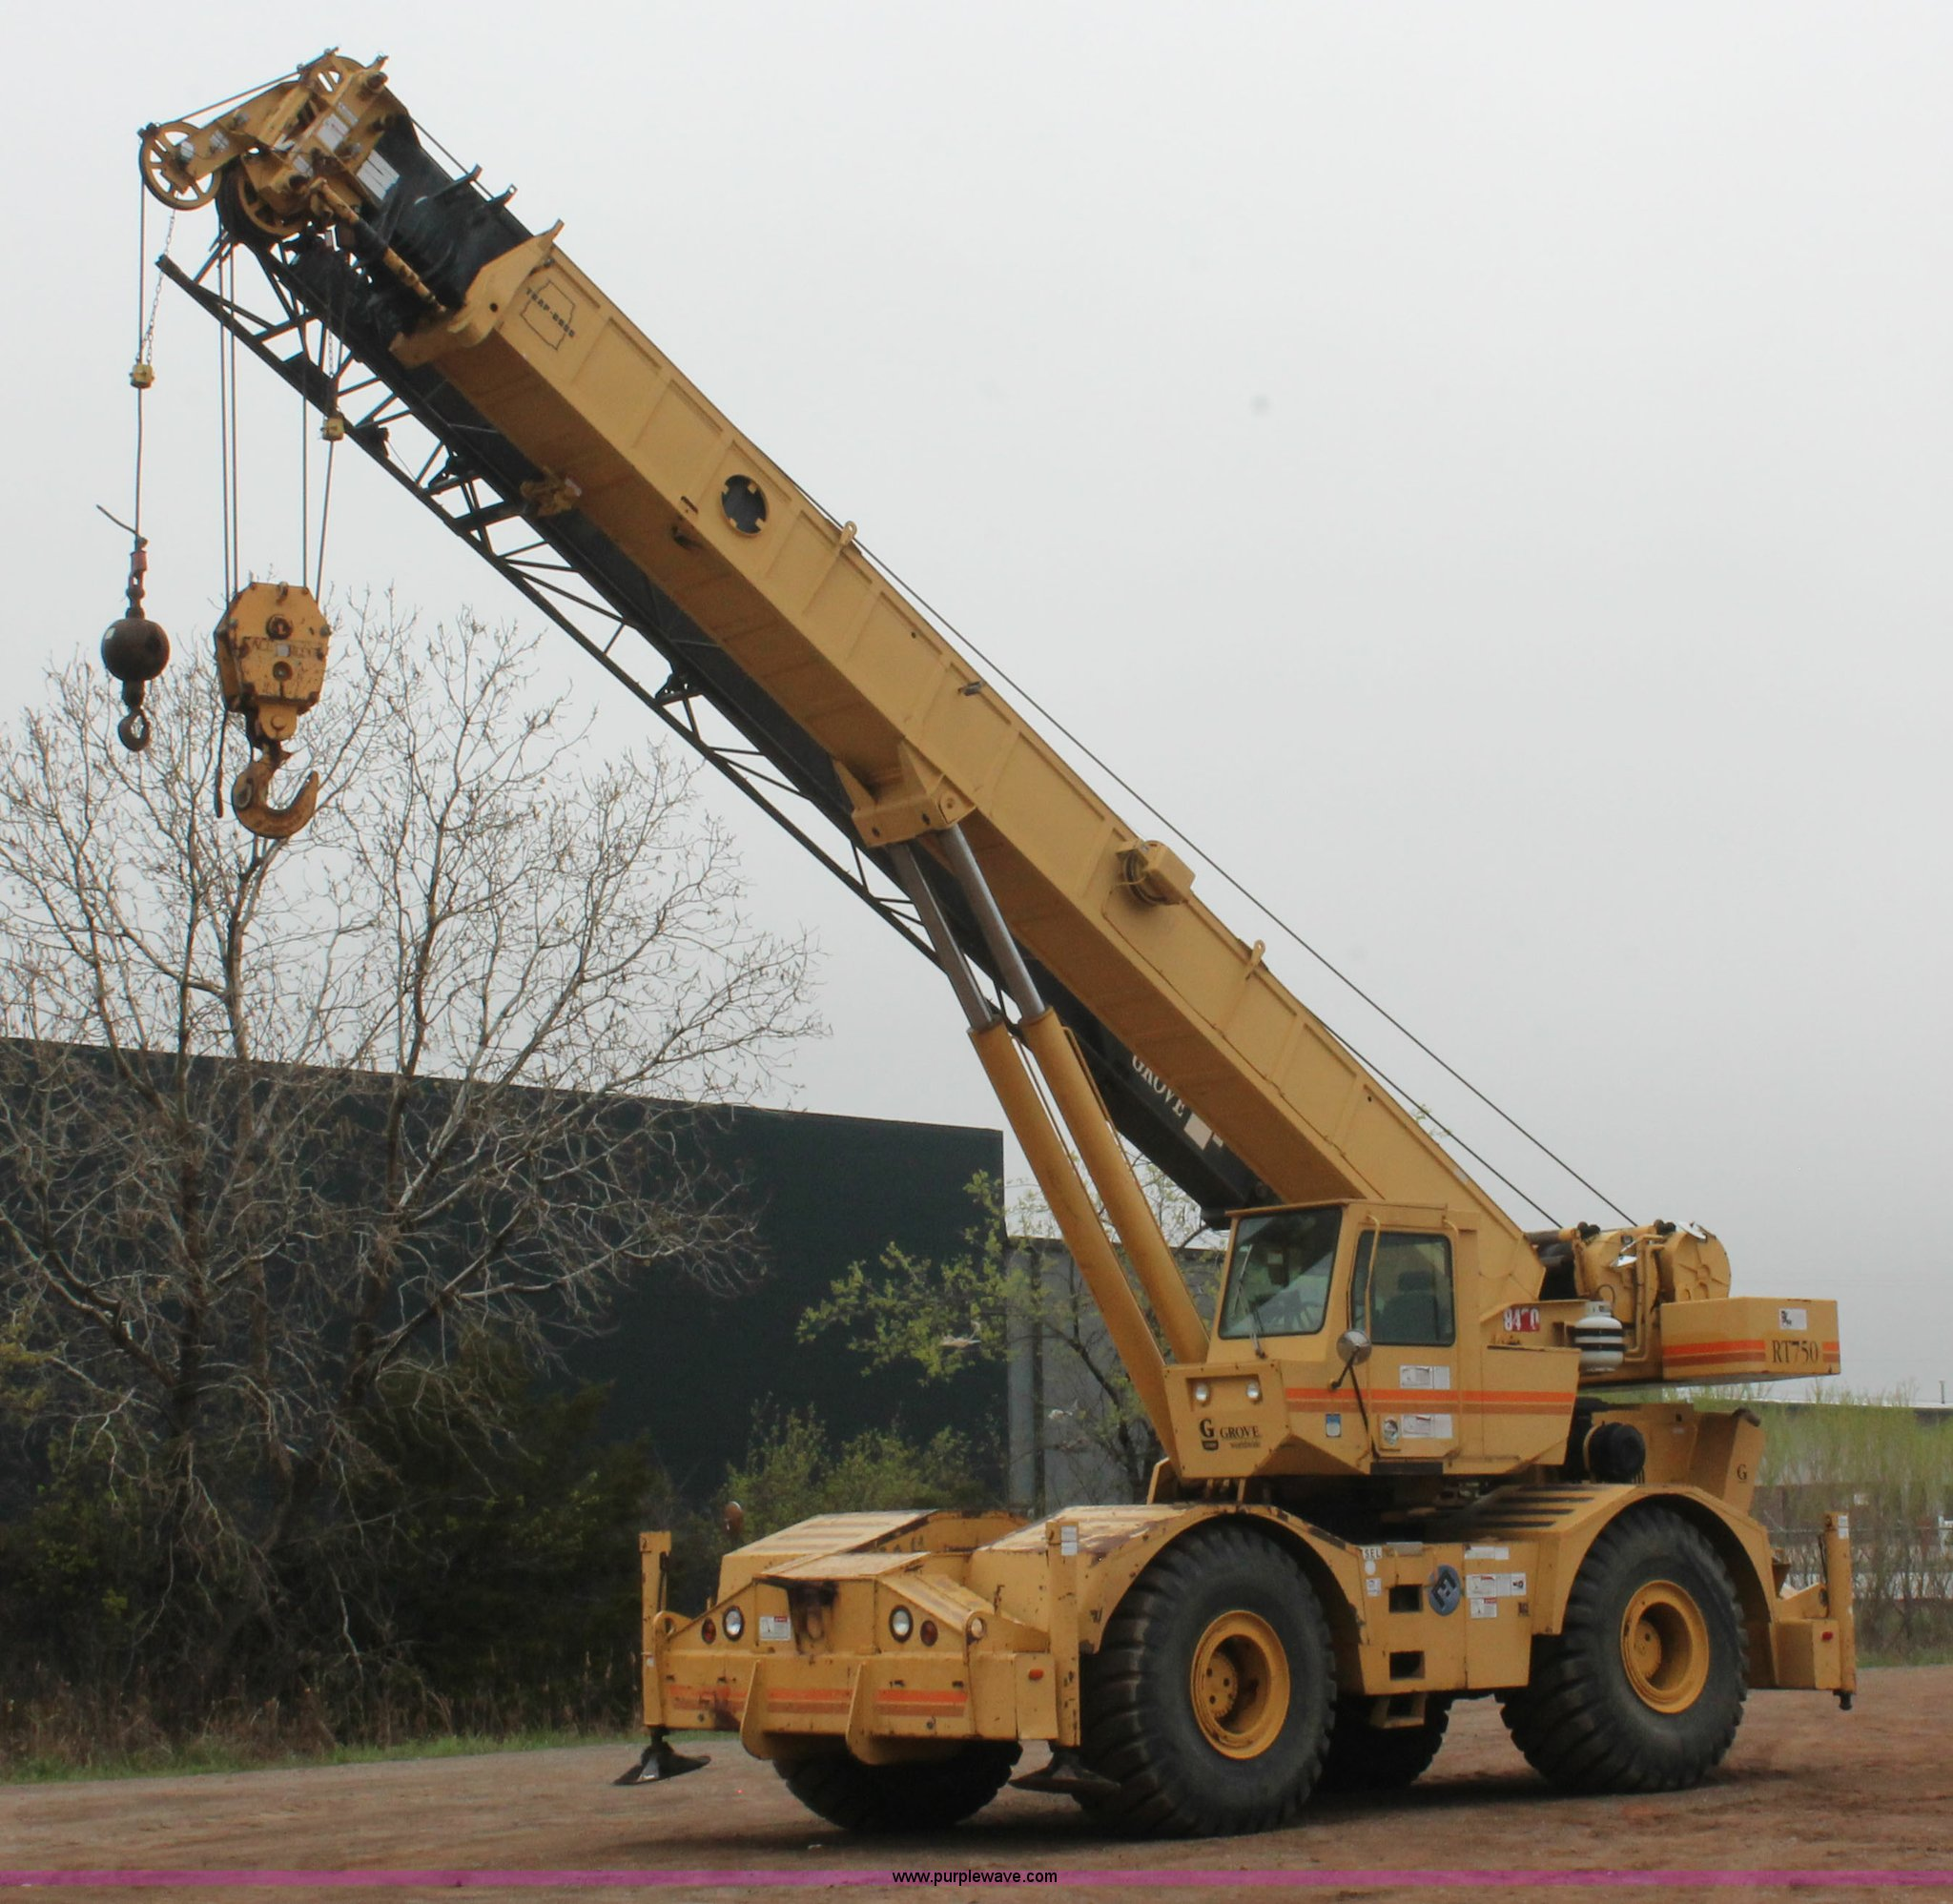 H5841 image for item H5841 1997 Grove RT750 rough terrain crane